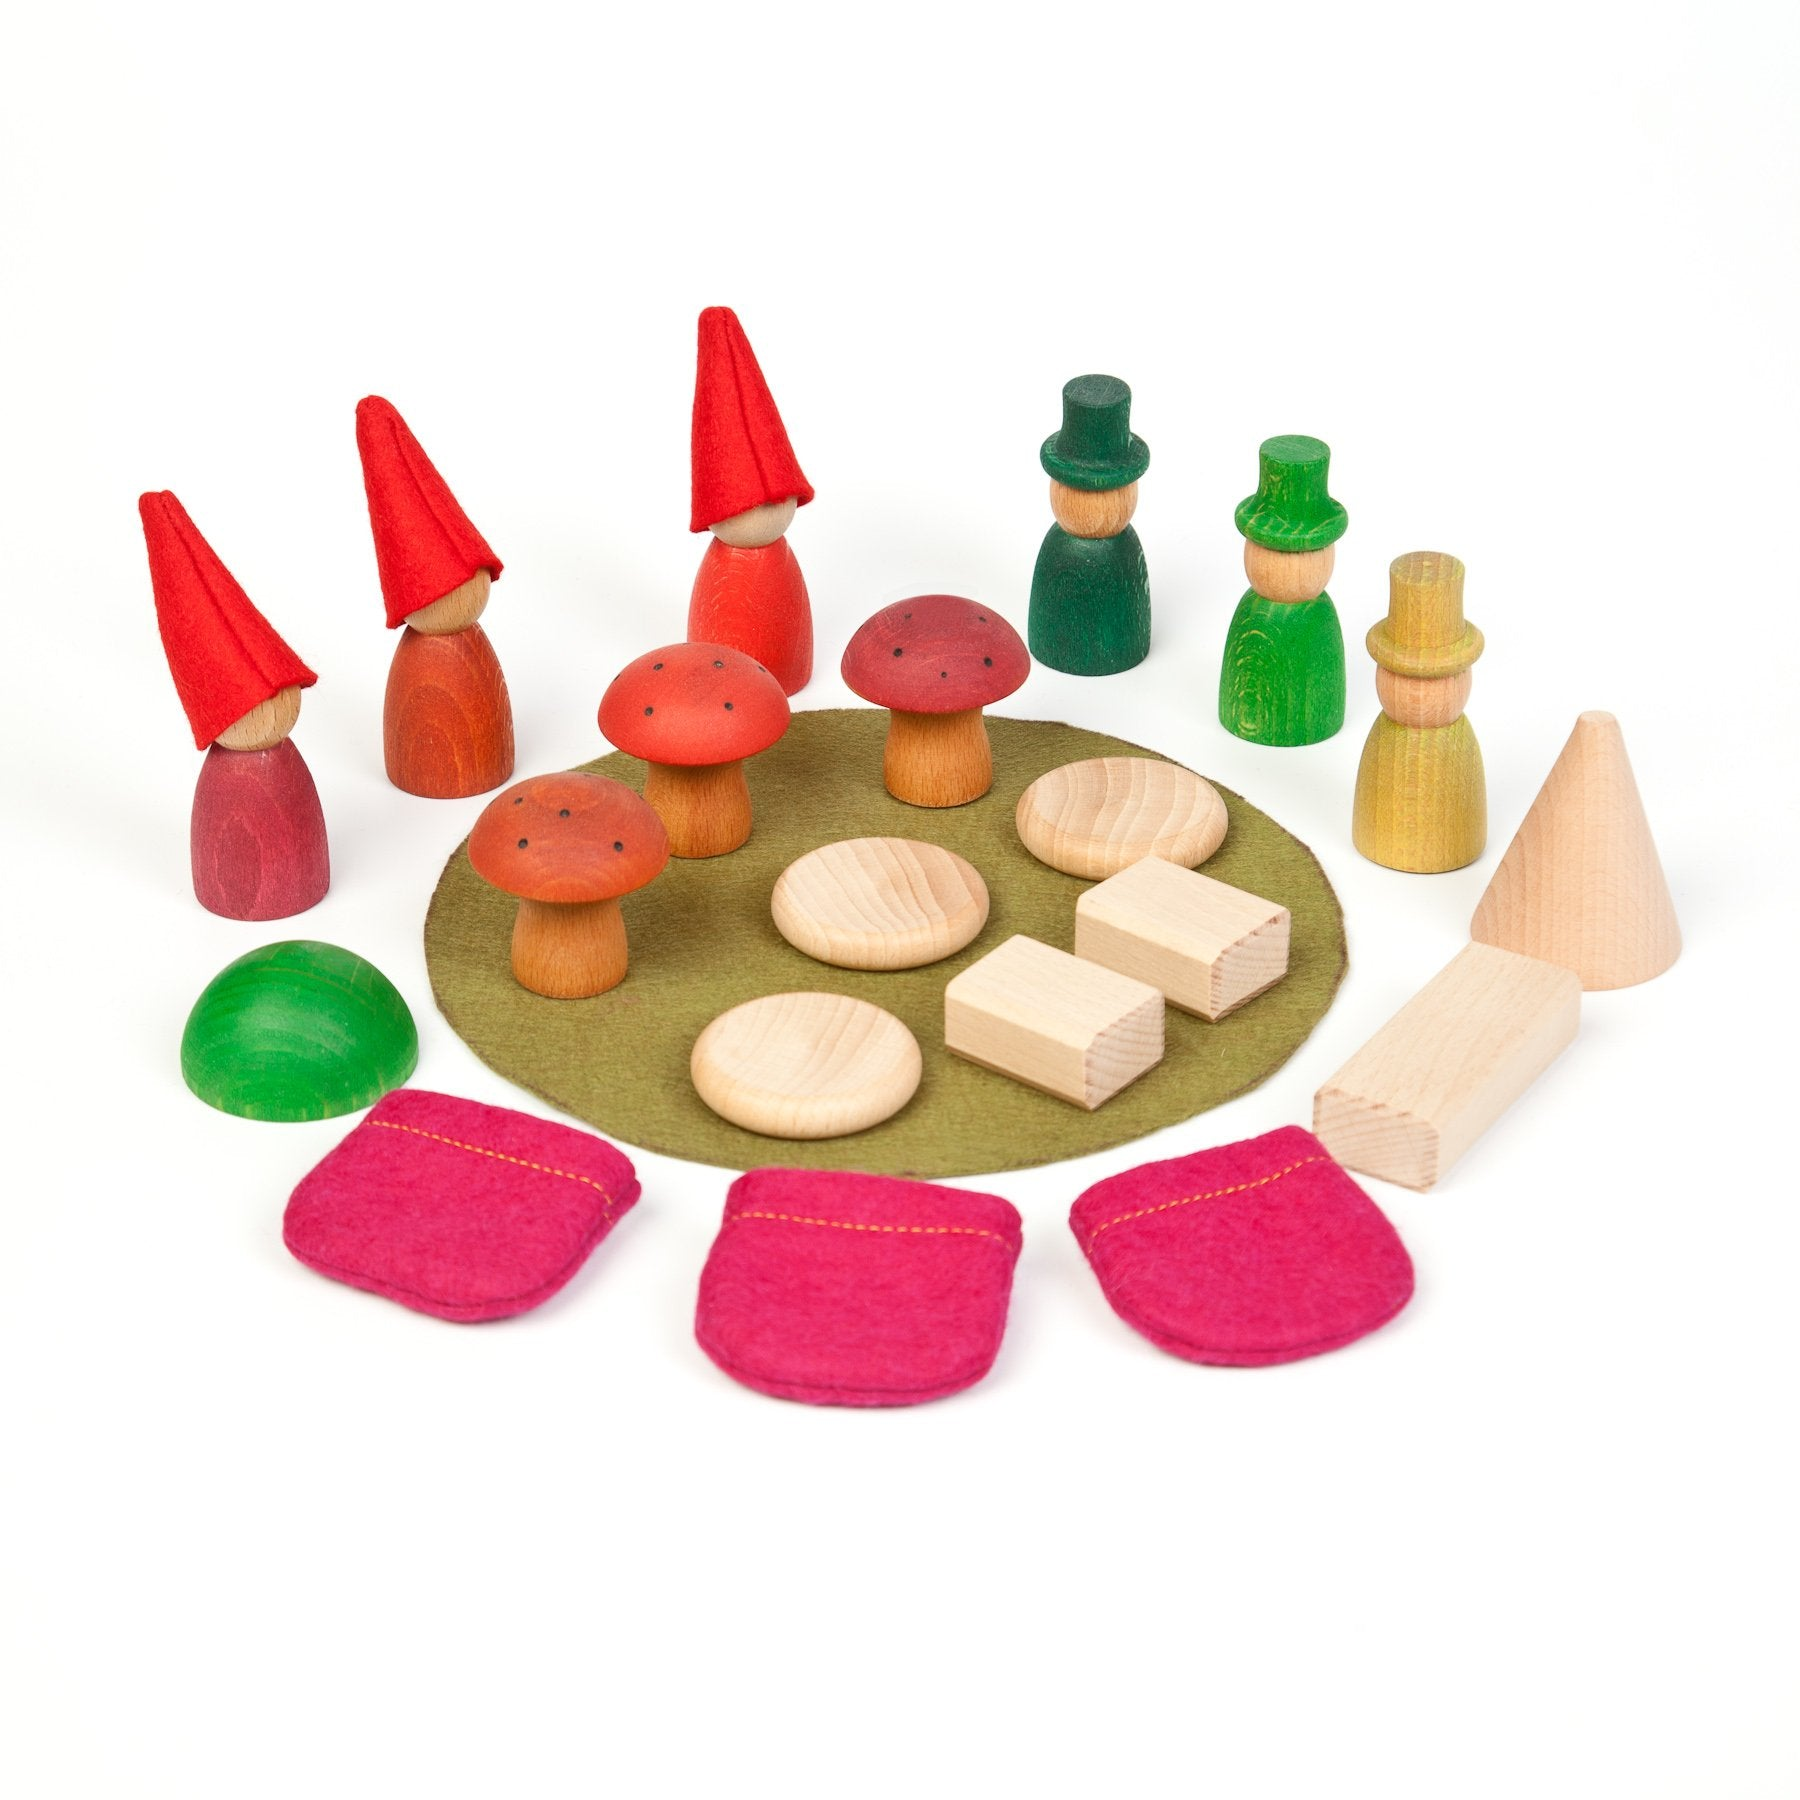 Grapat Wooden Nins Forest Small World Set Grapat Activity Toys at Little Earth Nest Eco Shop